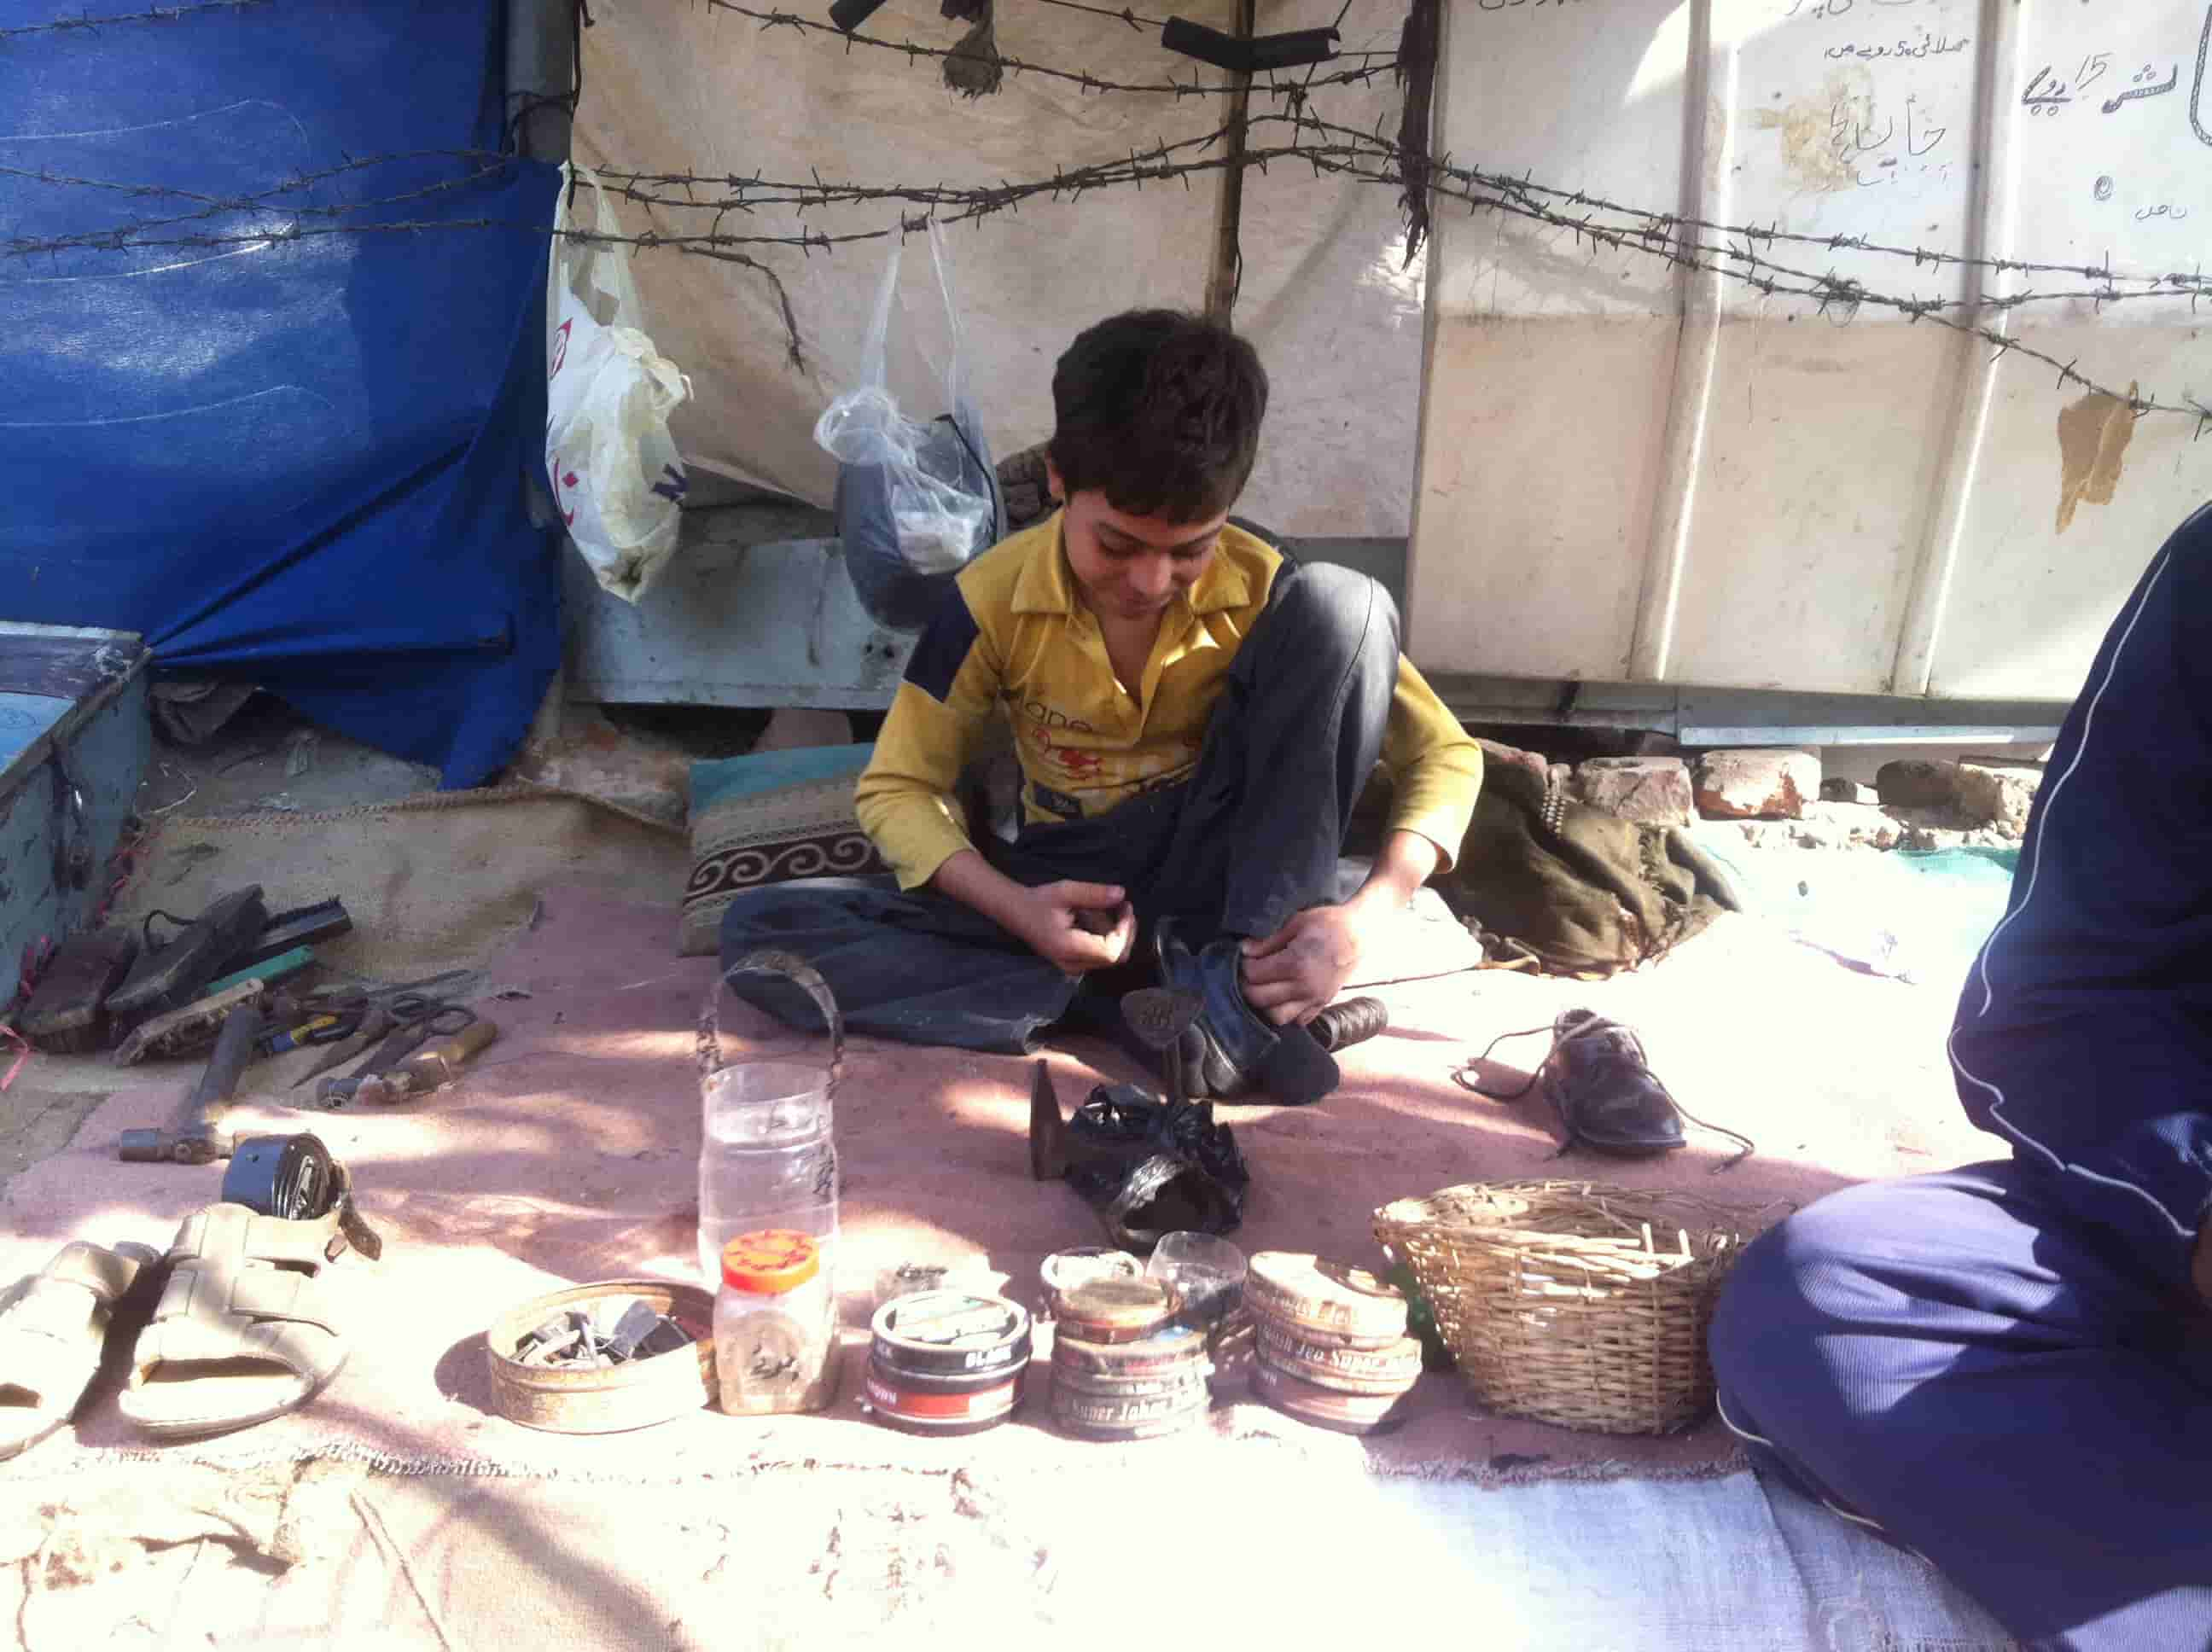 Child employed as a cobbler on the streets.